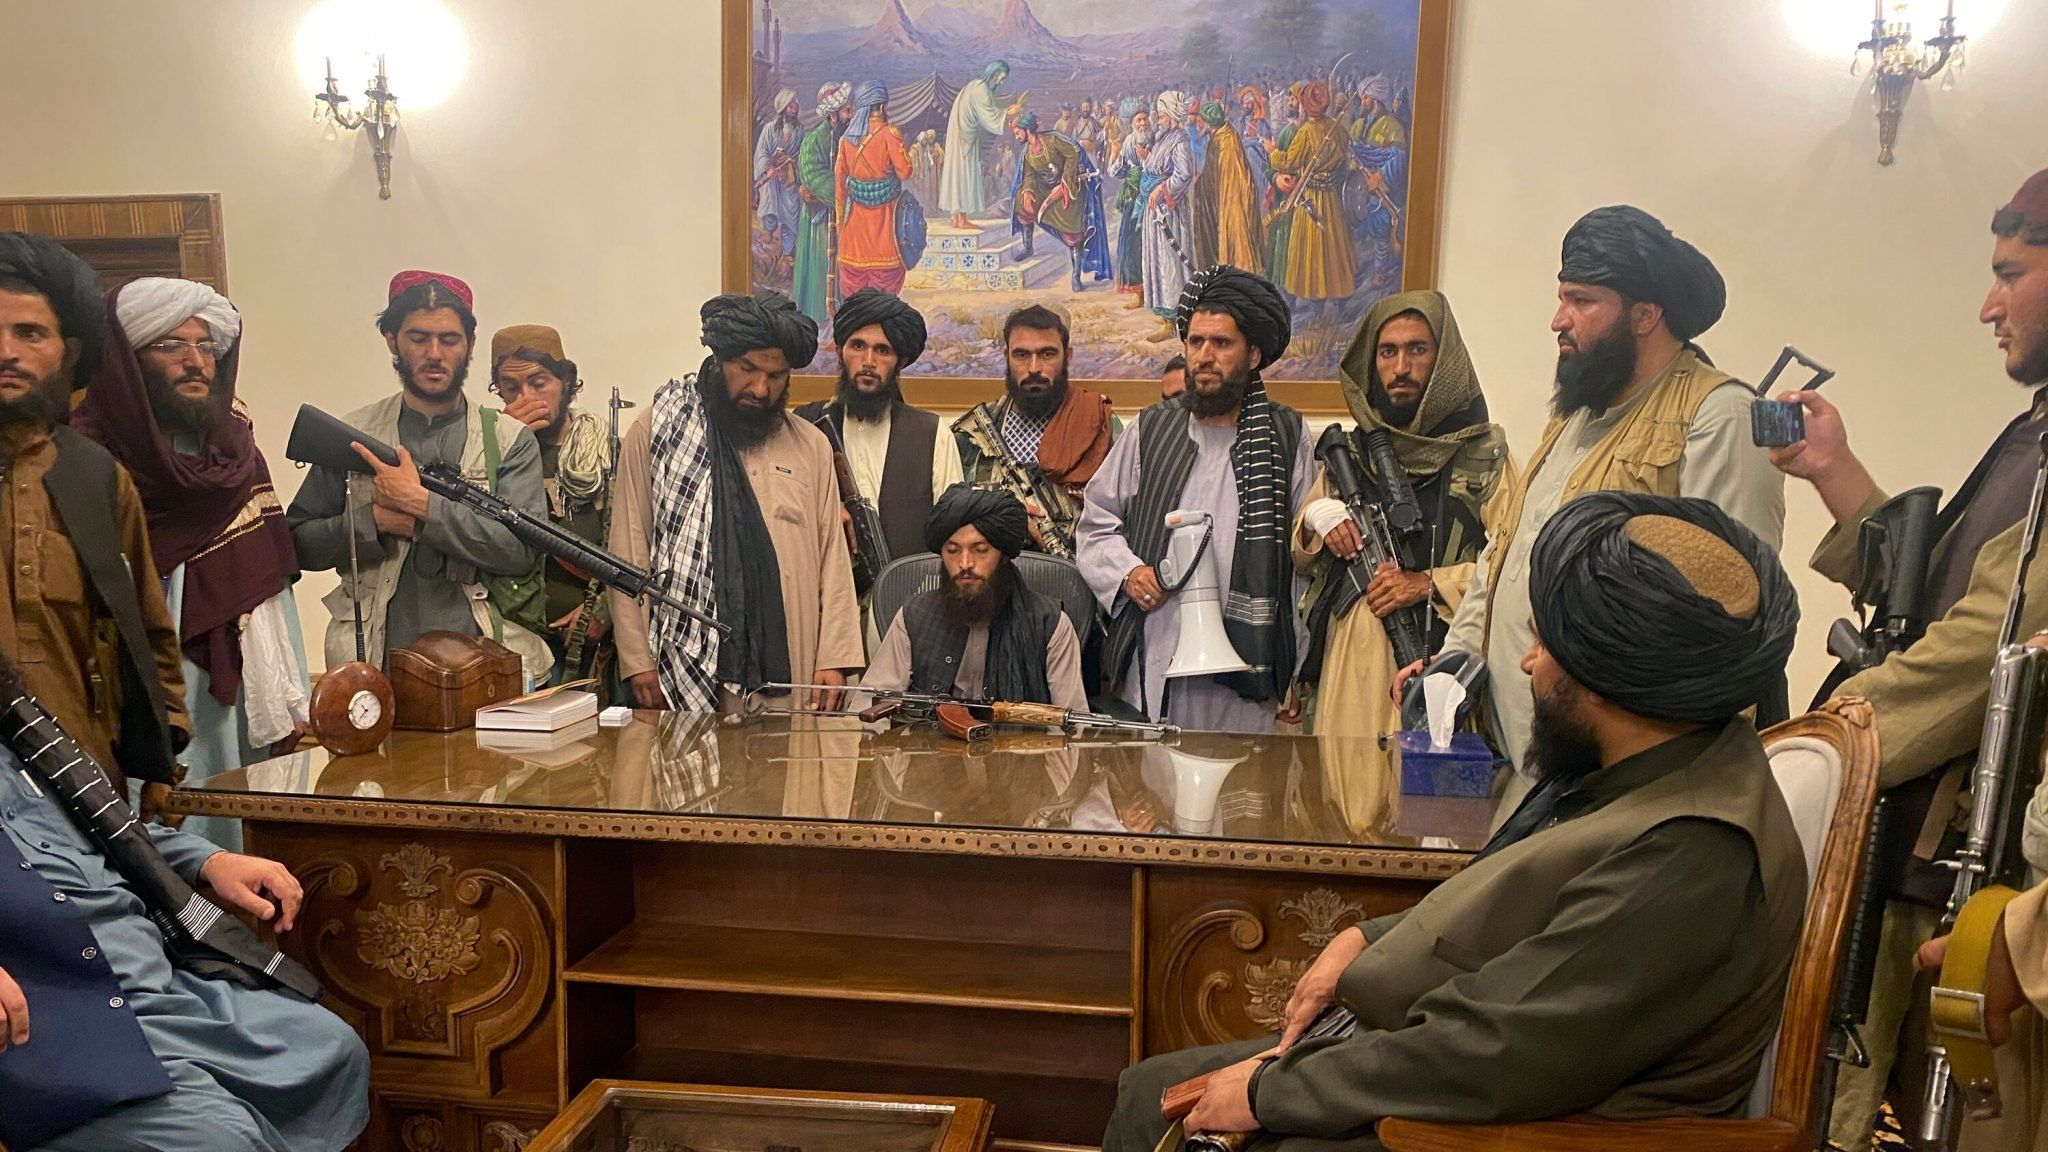 Taliban: The students need to learn good governance